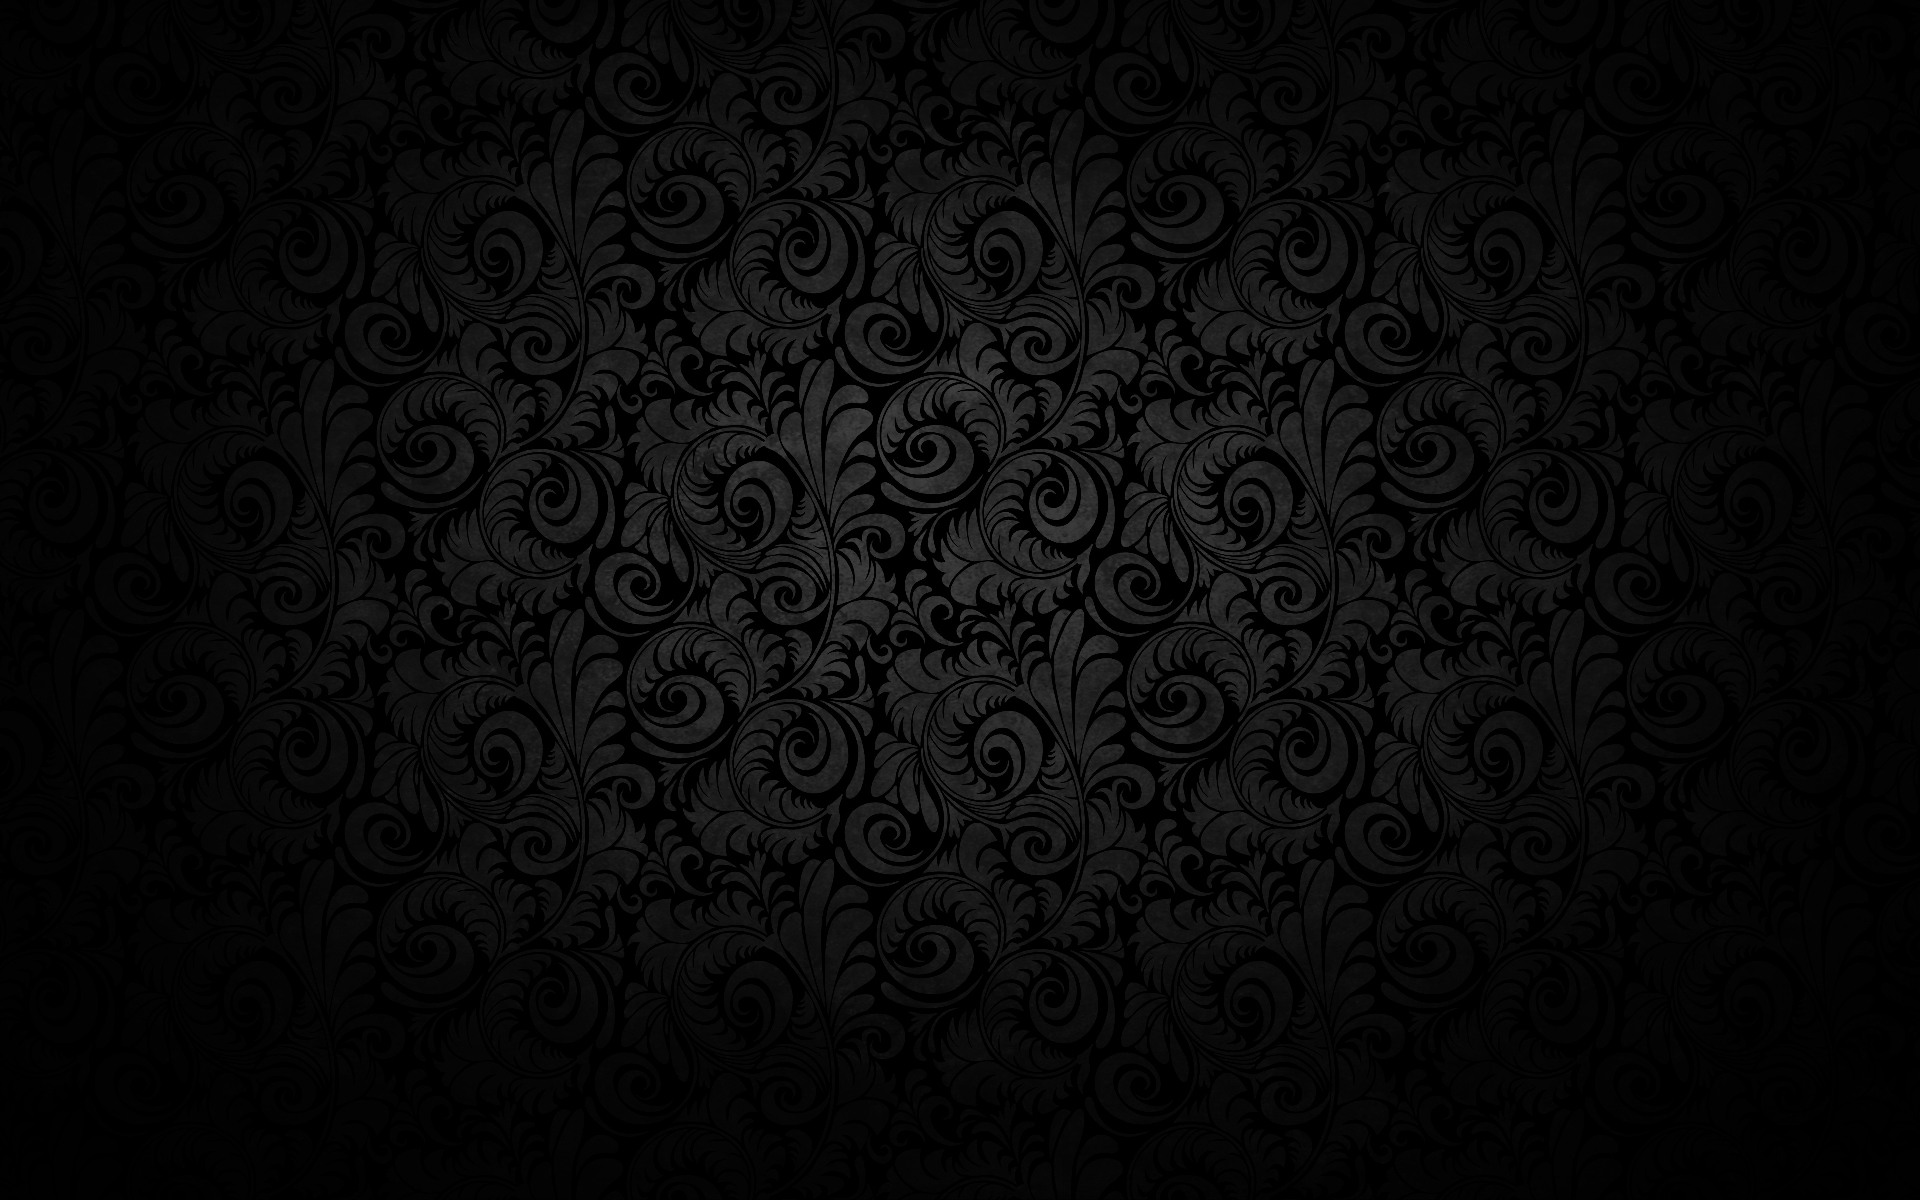 Vintage wall pattern wallpaper   359065 1920x1200